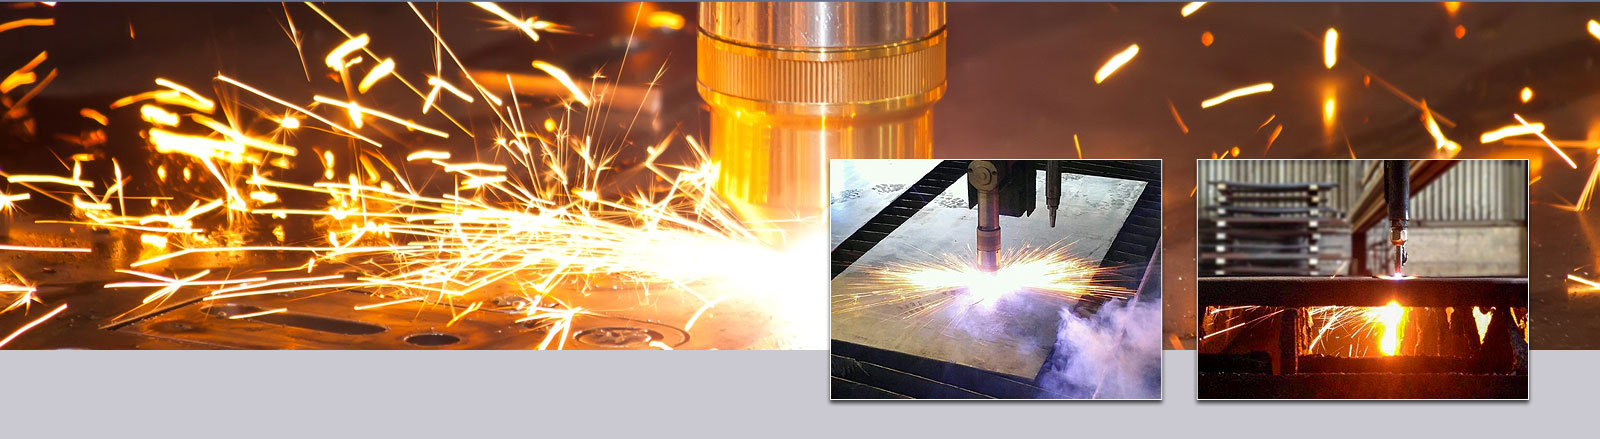 Metal Fabrication Services & Steel Products - Hillside, New